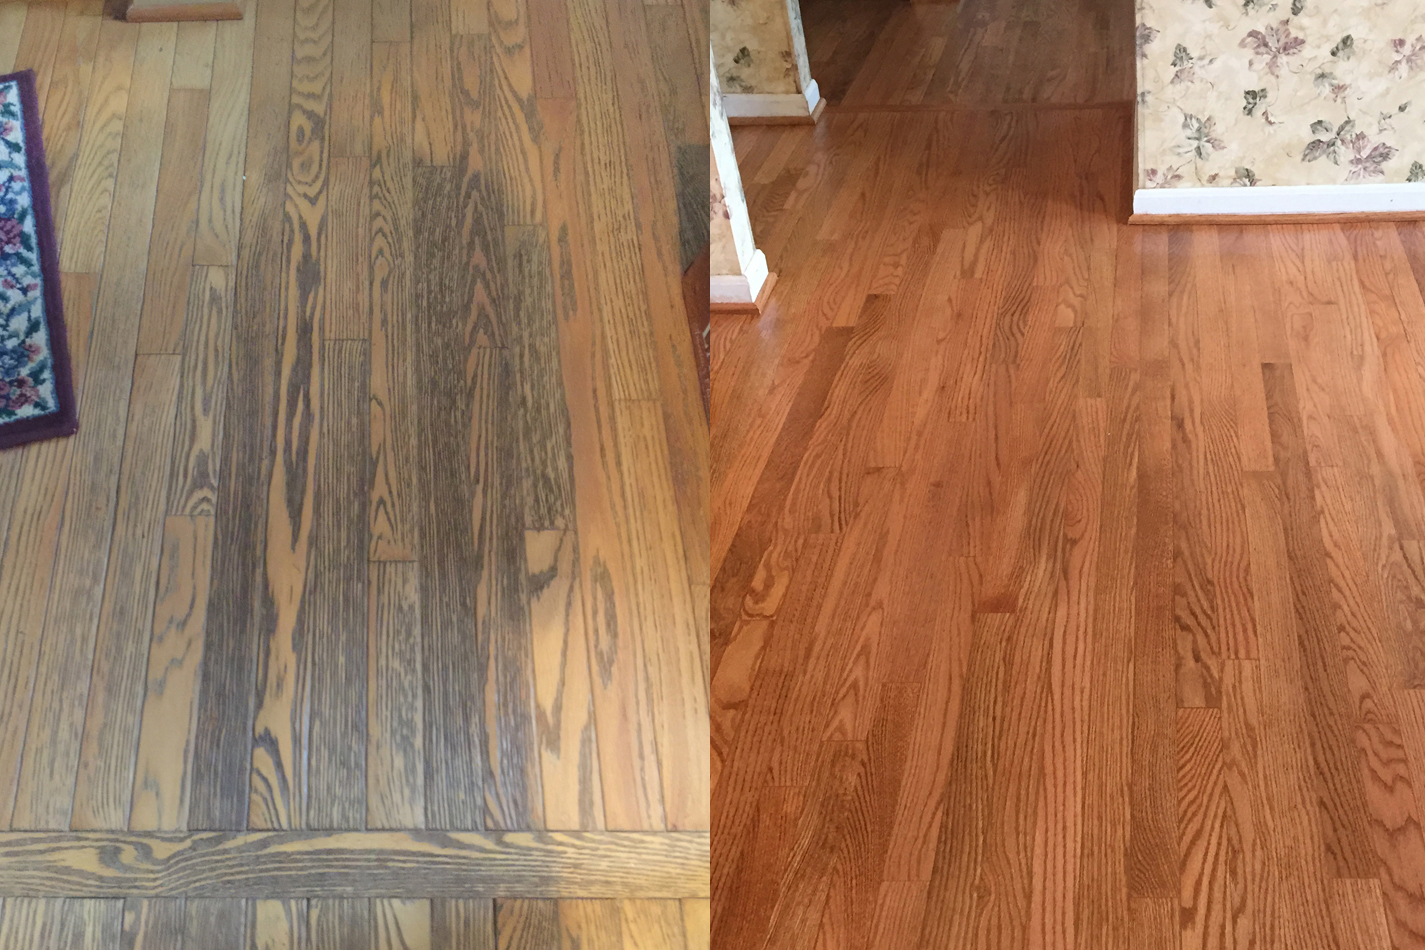 Hardwood Floor Refinishing Service Woodbridge VA